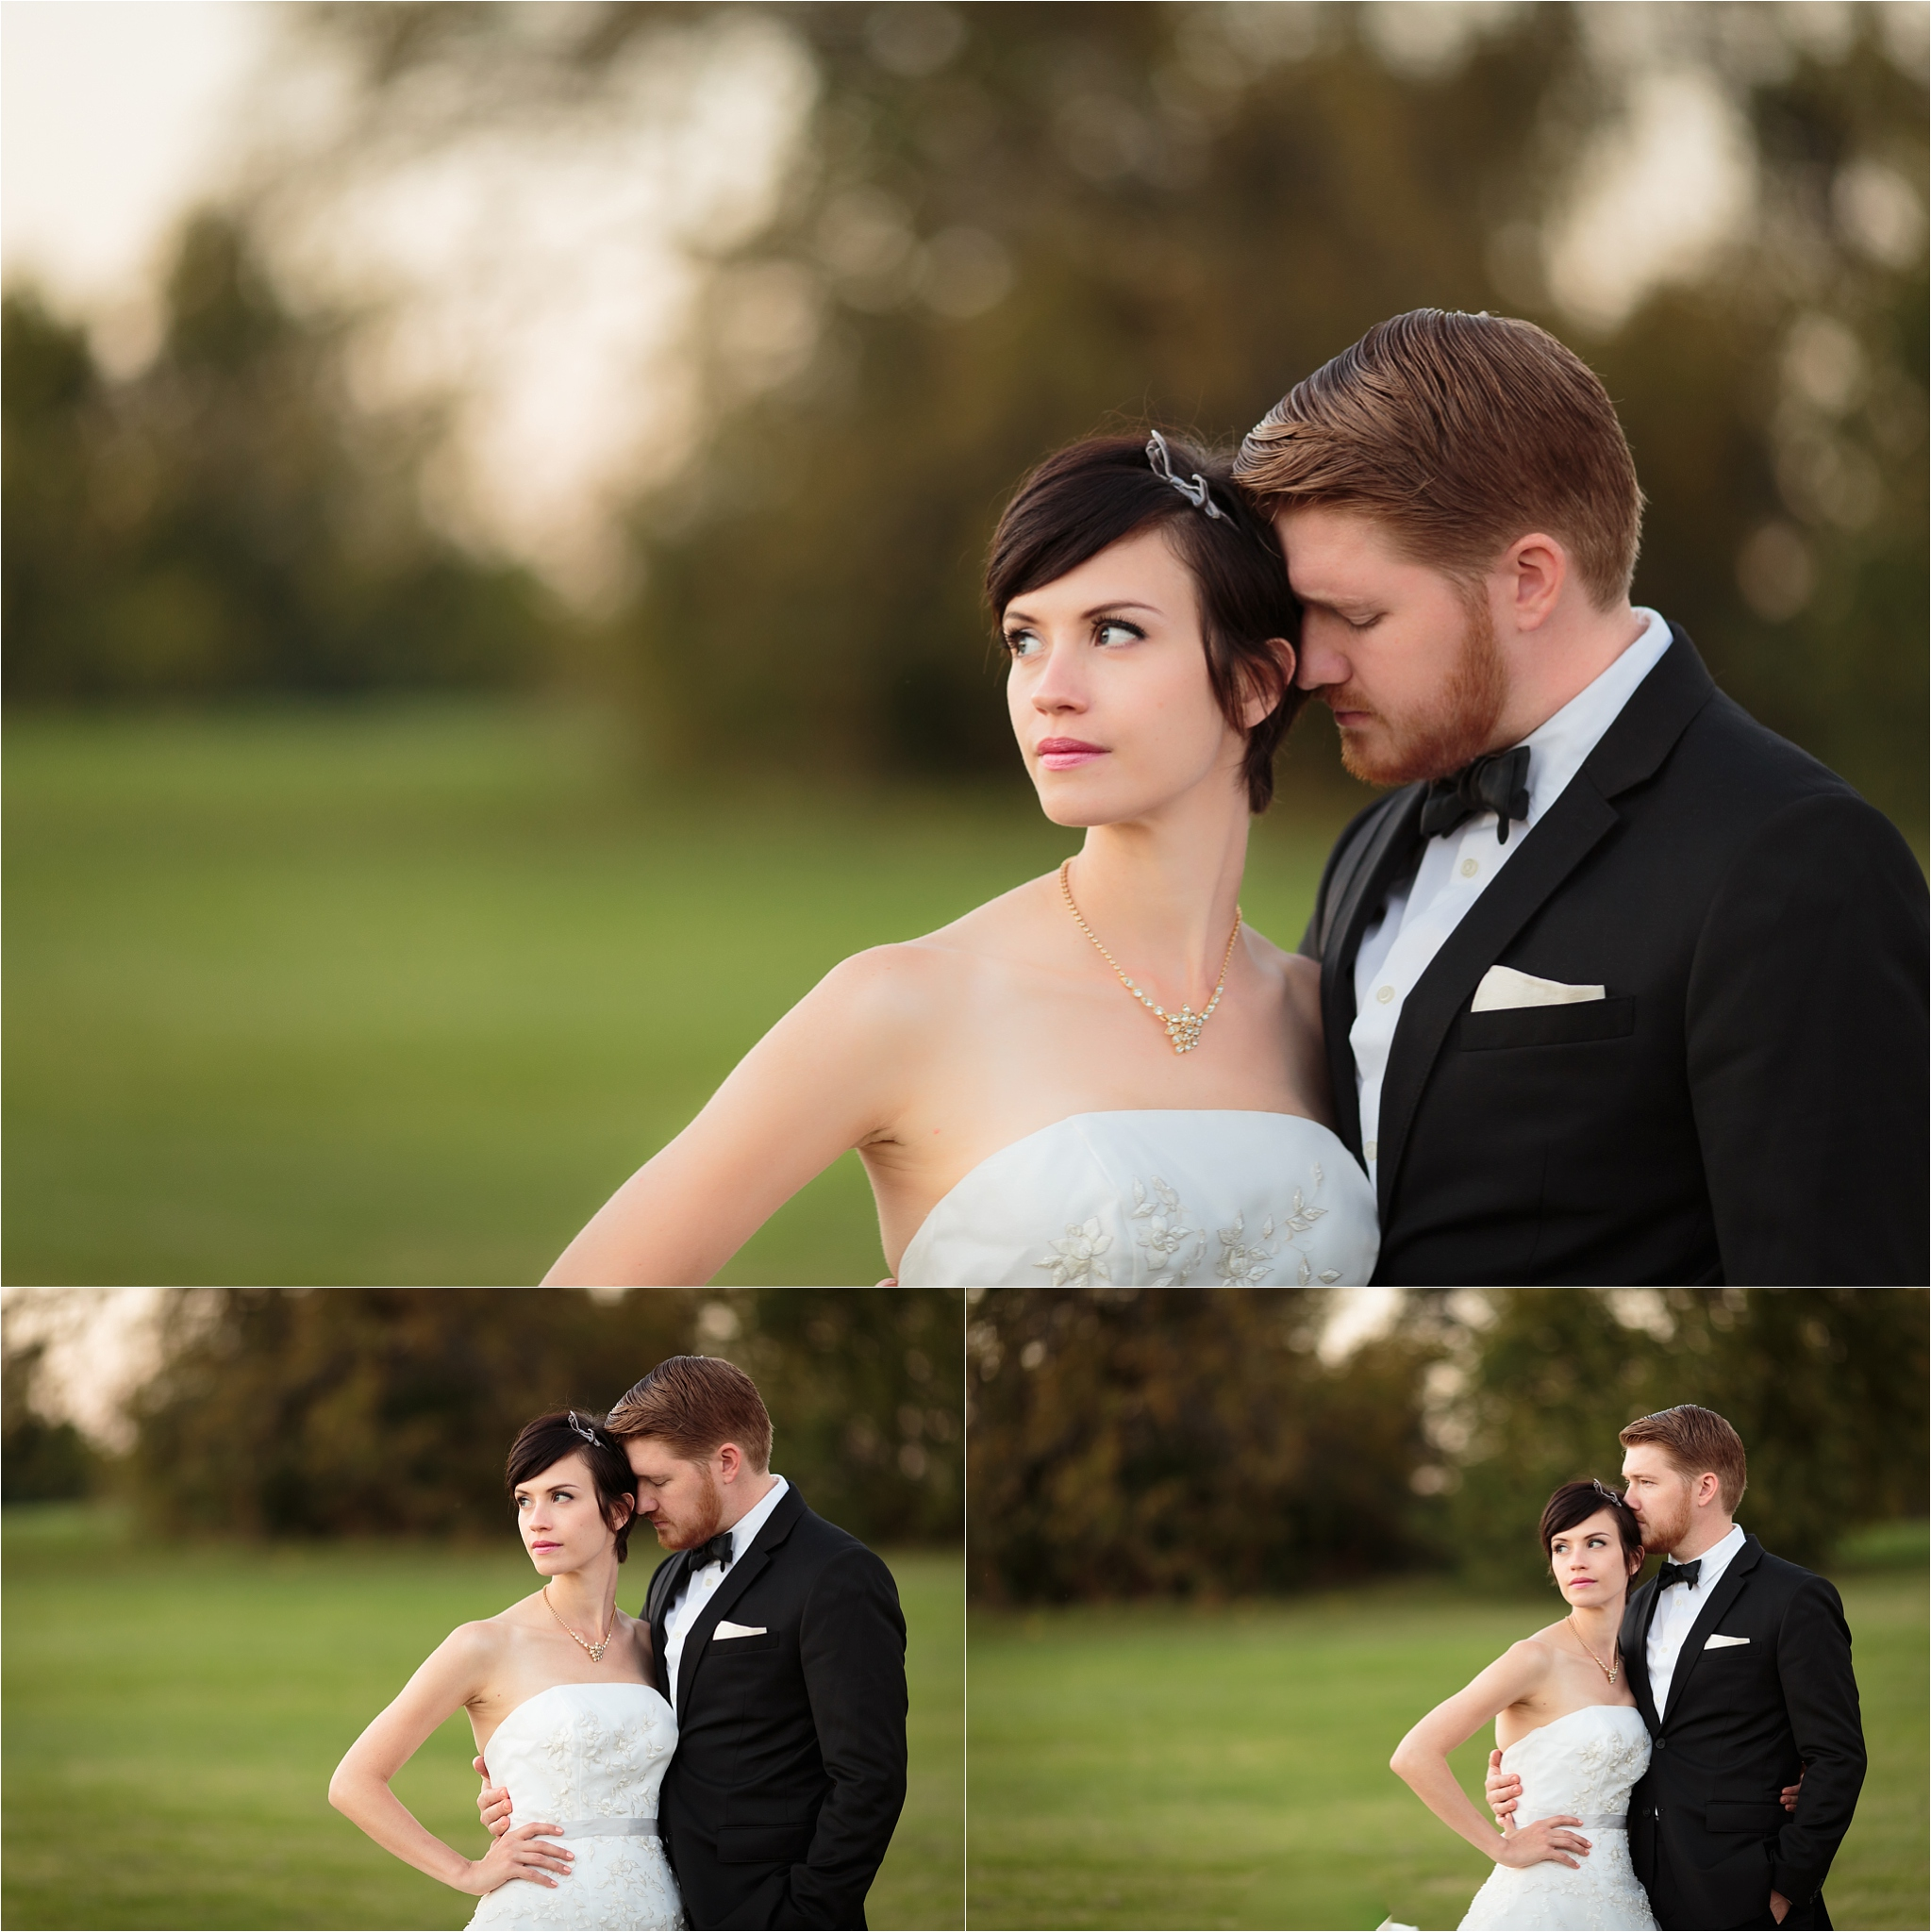 zach-jody-gray-workshop-in-camera-wedding-3906_blog.jpg